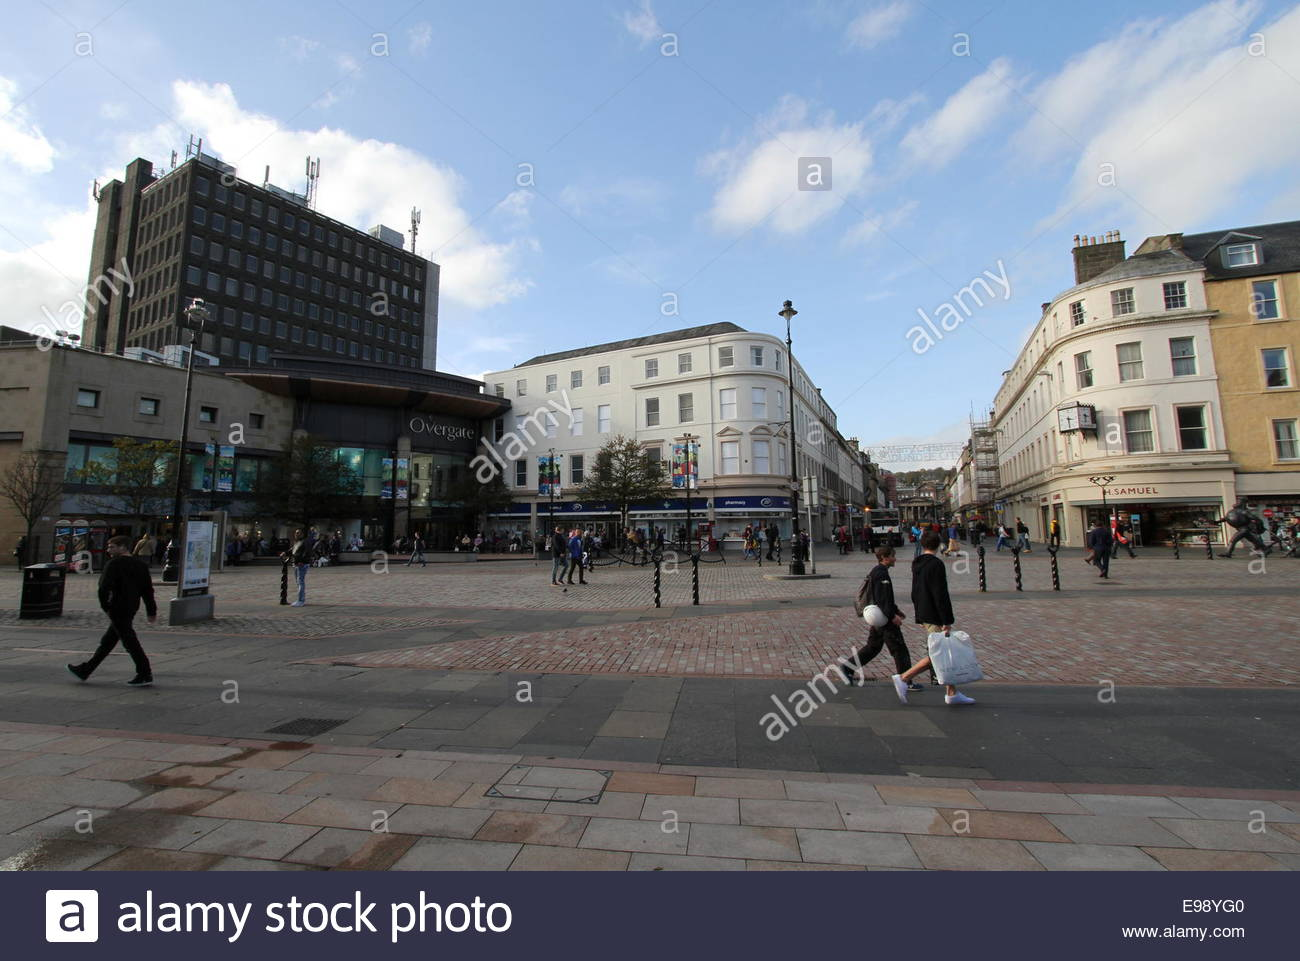 Wide angle view of City Square and Overgate Shopping Centre Dundee Scotland  October 2014 - Stock Image